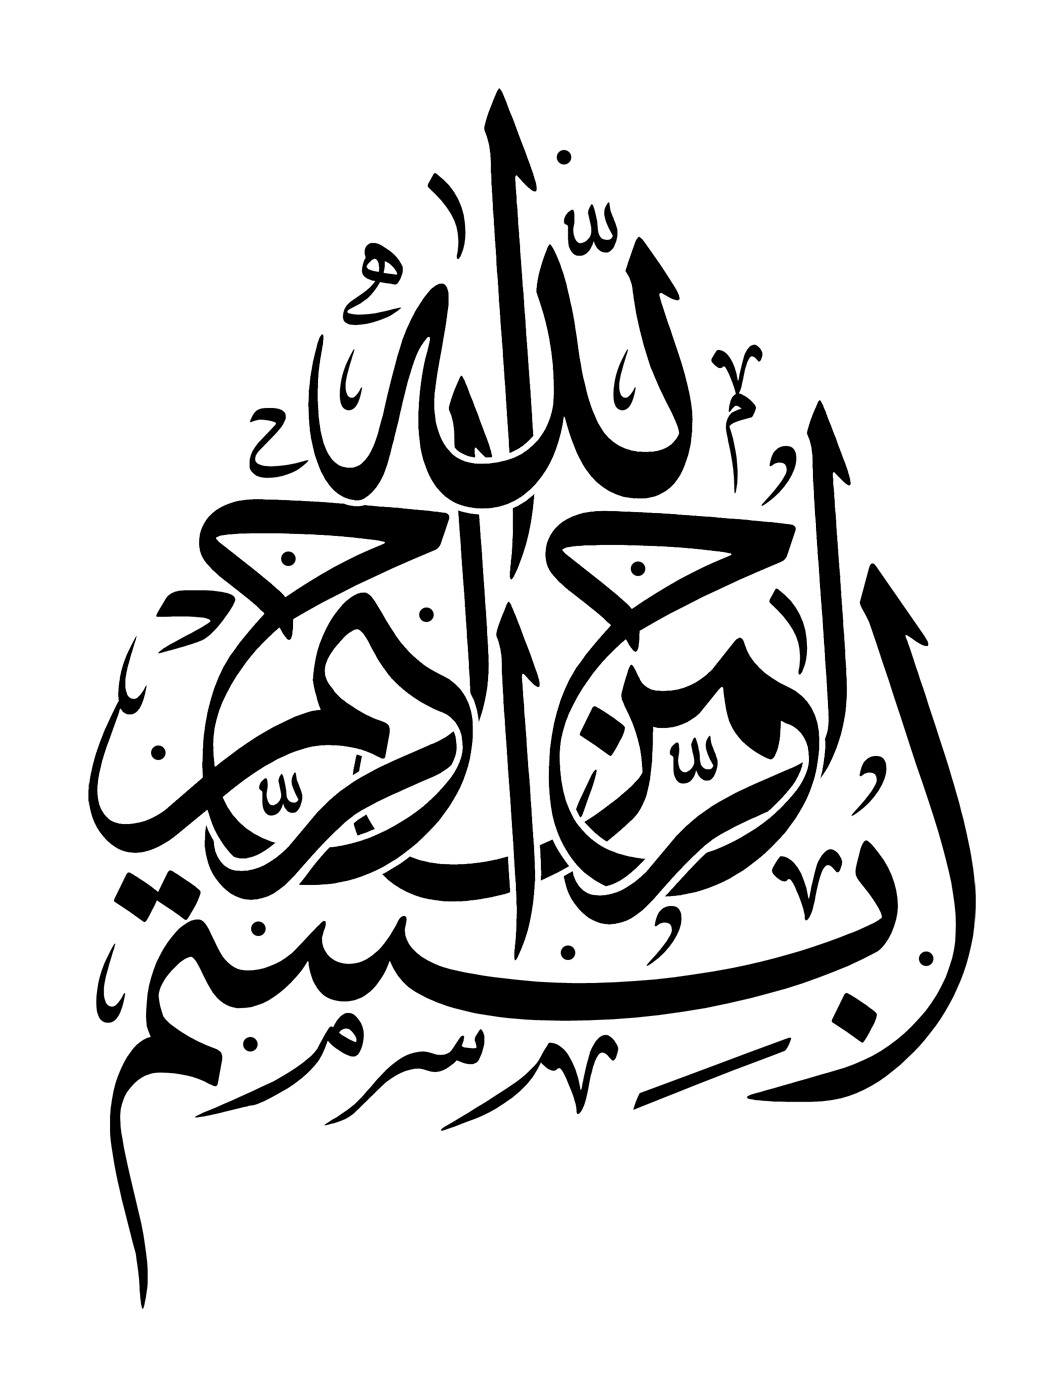 Calligraphy vector arabesque. Islamic